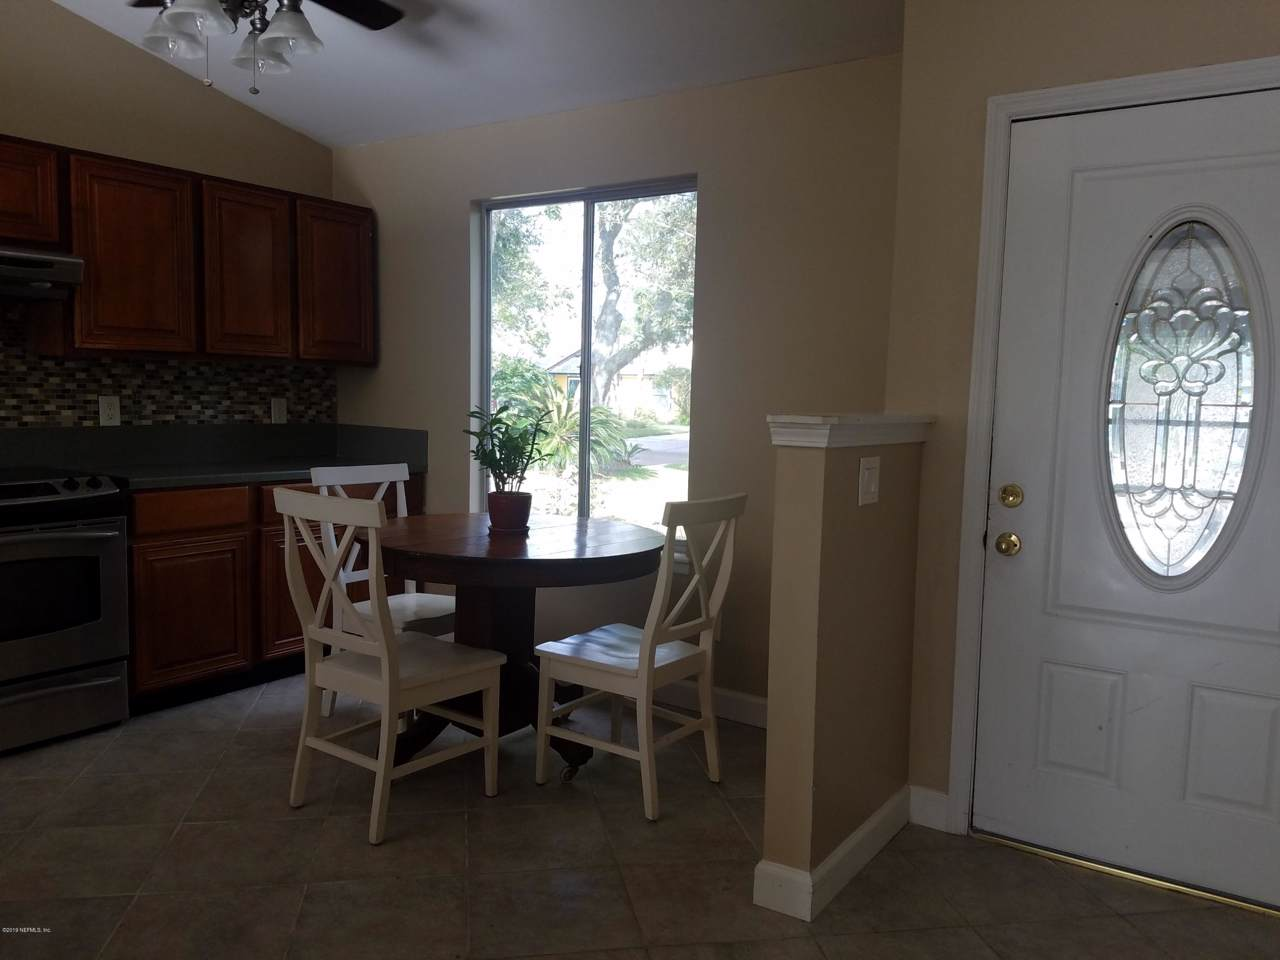 468 Aquatic Dr - Photo 1